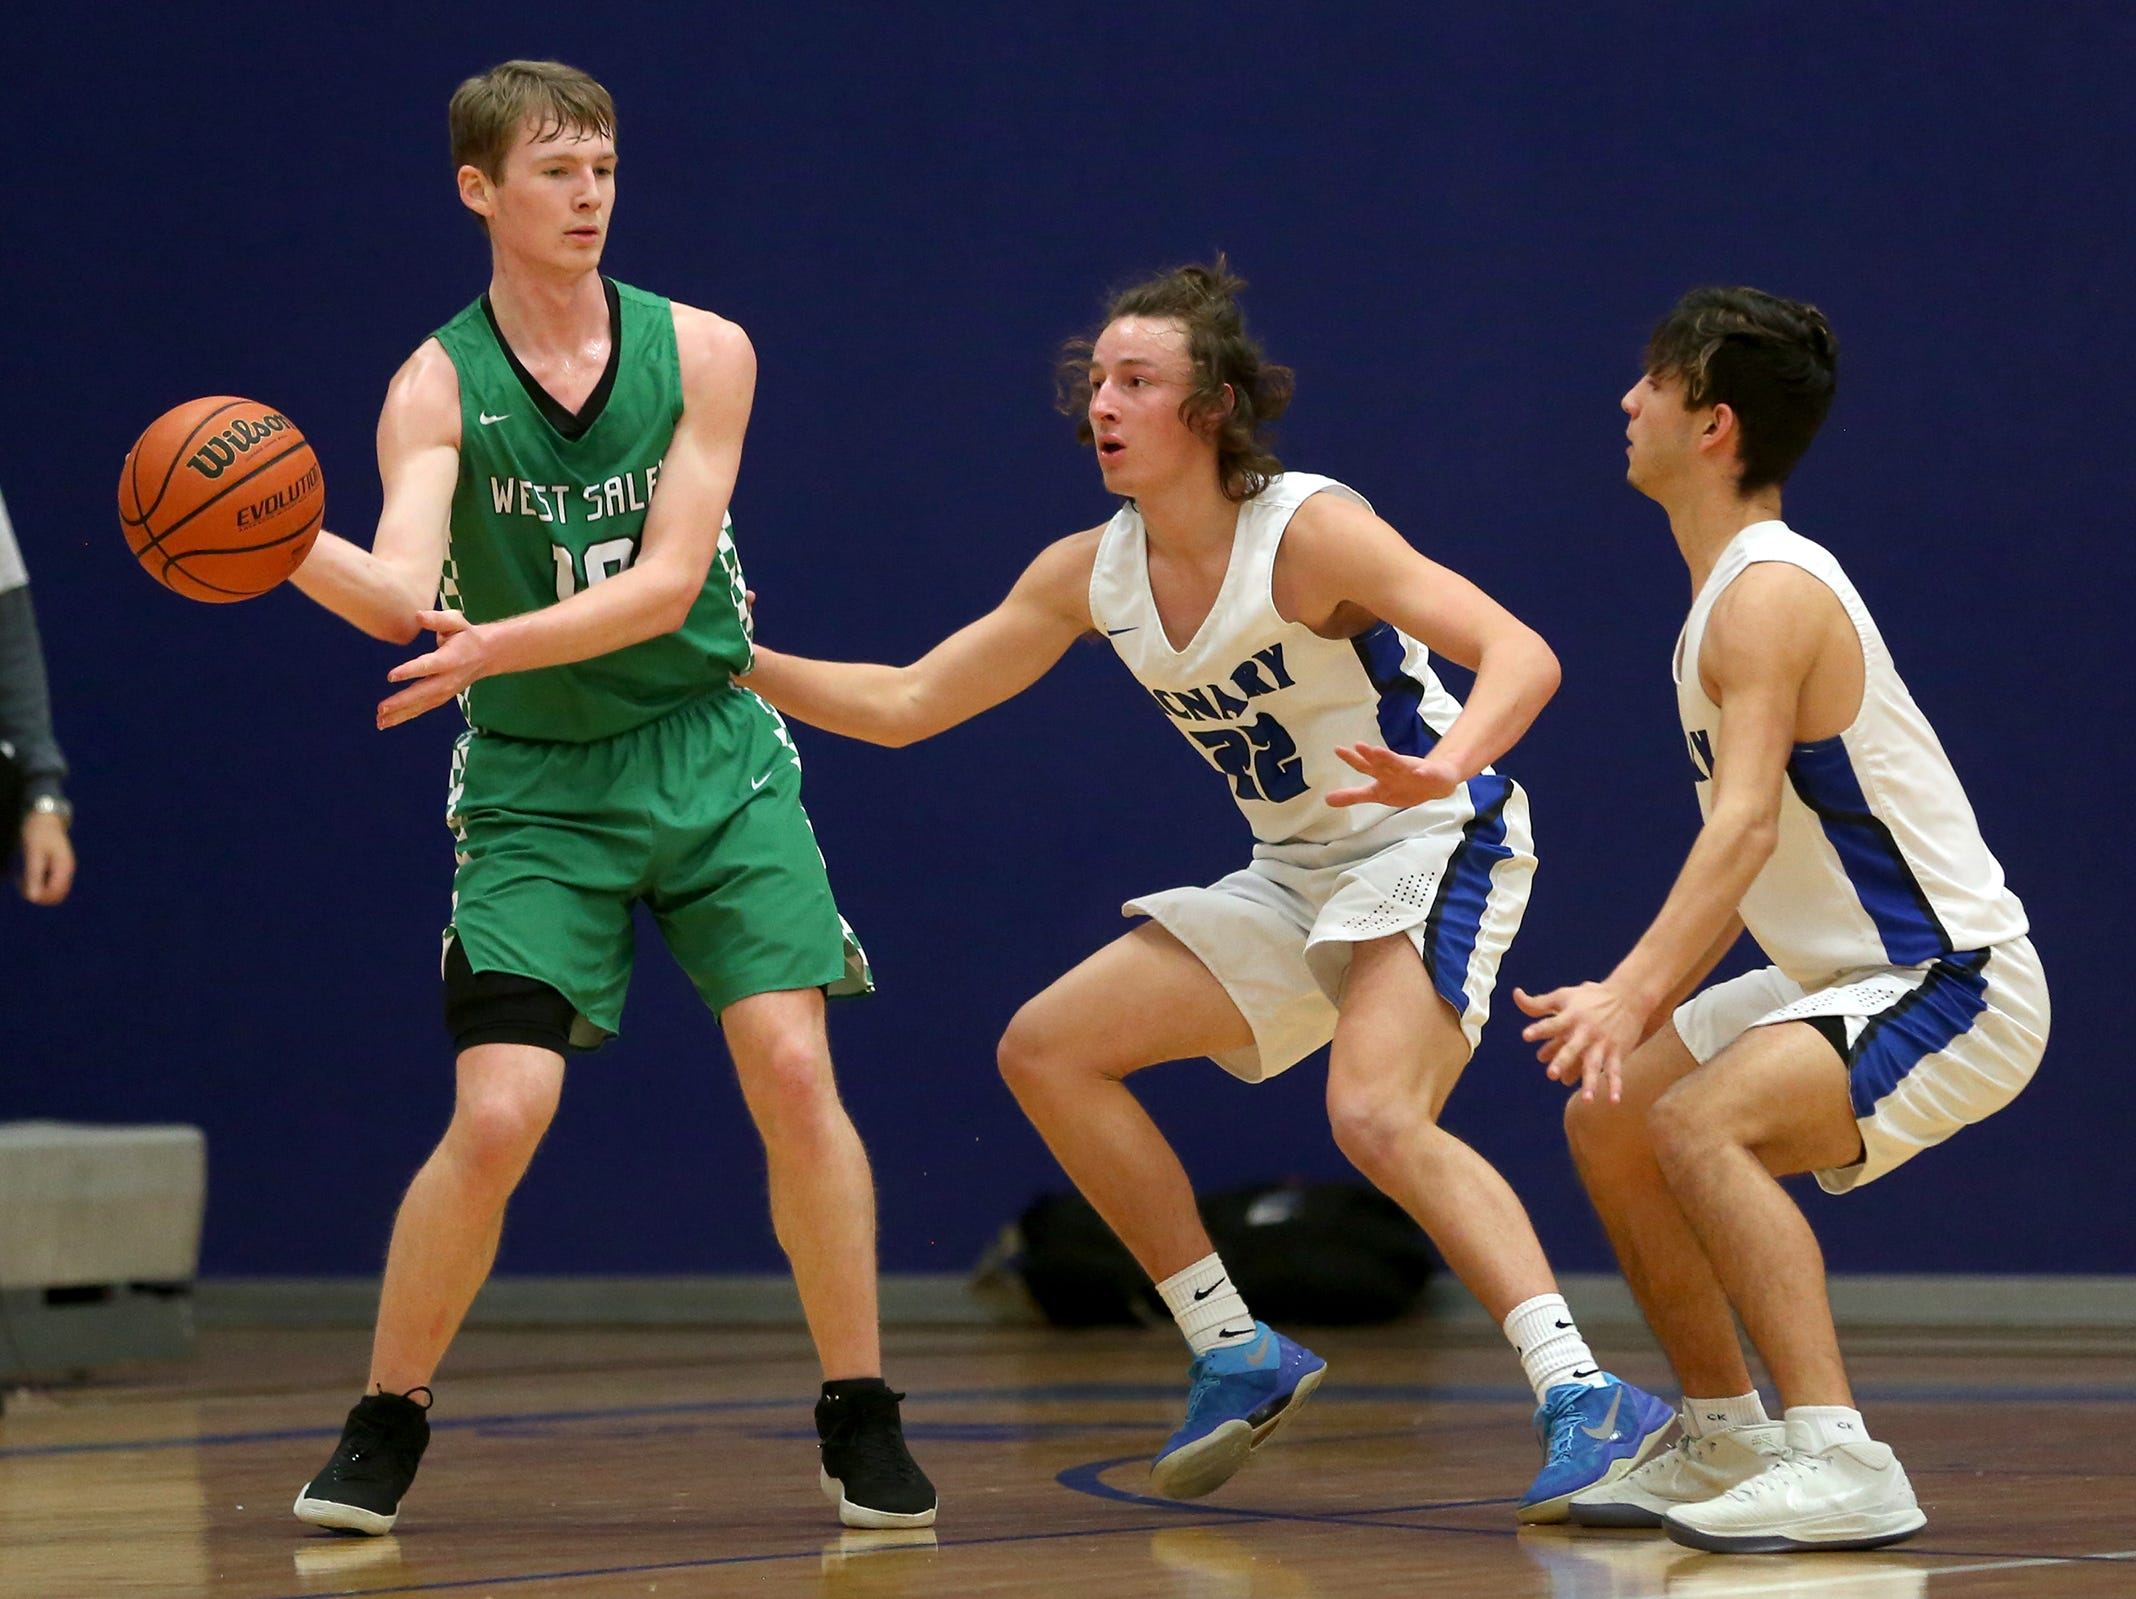 West Salem's Justin Scoggin (10) makes a pass around McNary's defense during the McNary boys basketball vs. West Salem game at McNary High School in Keizer on Wednesday, Feb. 6, 2019.